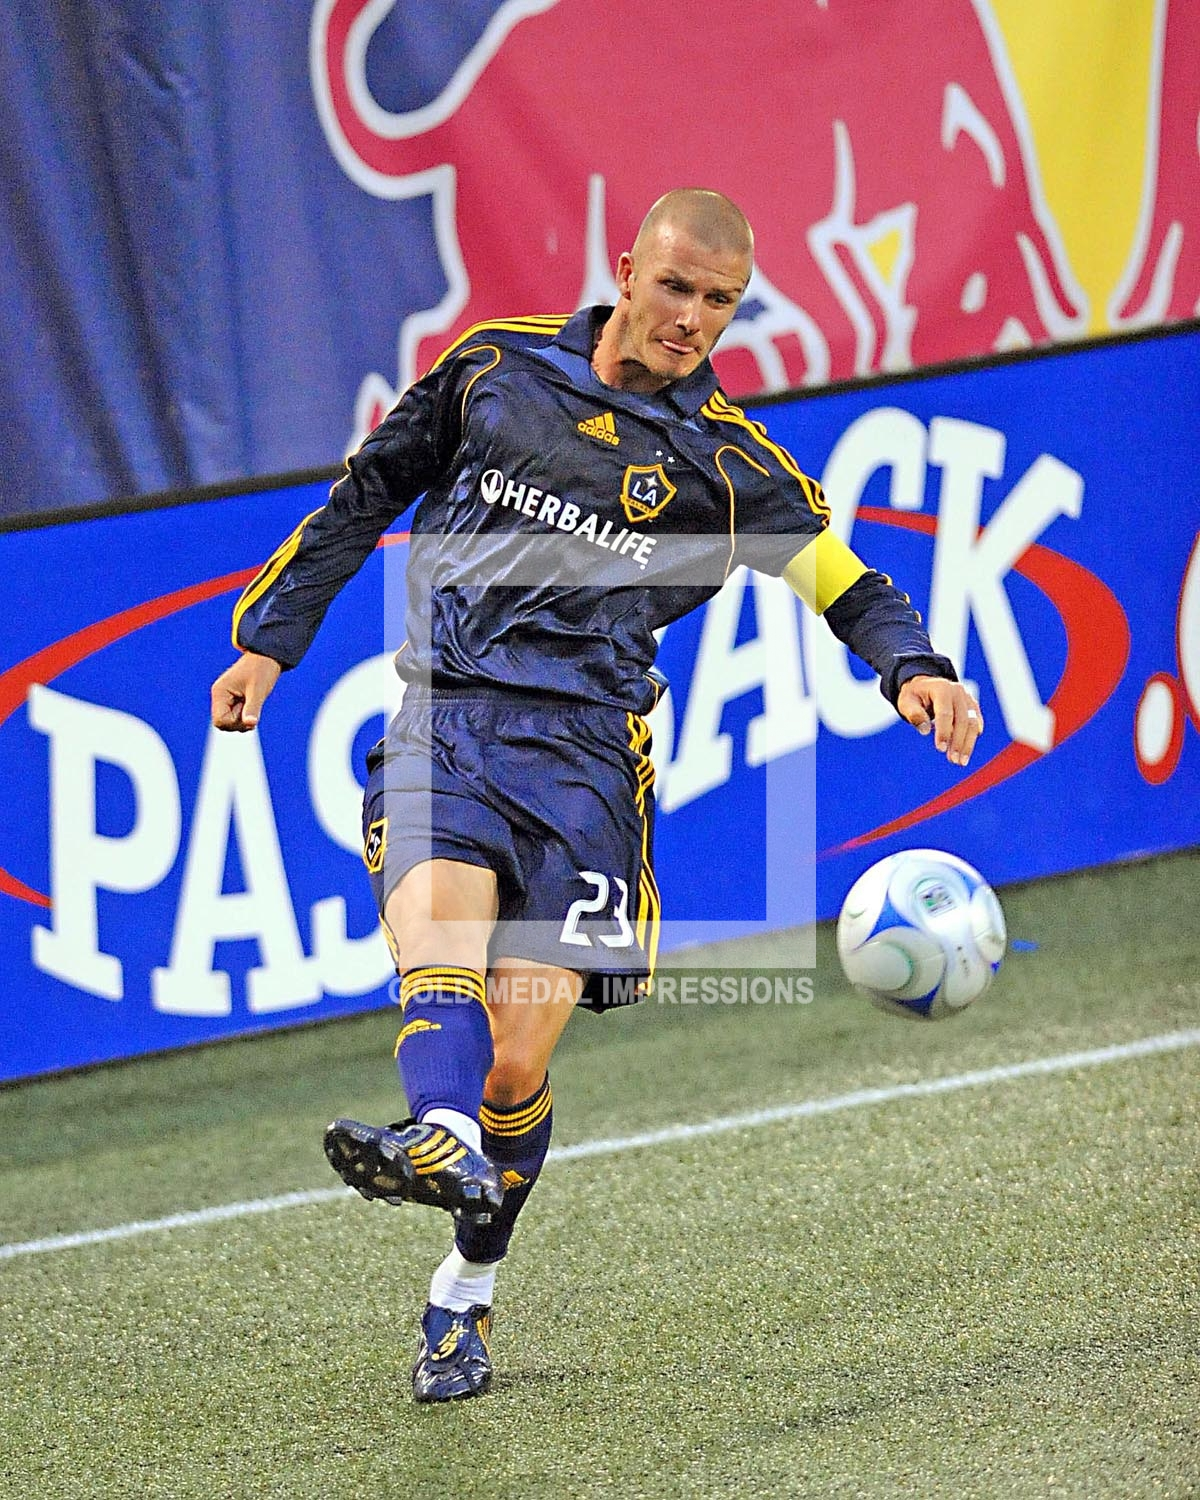 Los Angeles Galaxy Super Star David Beckham Gold Medal